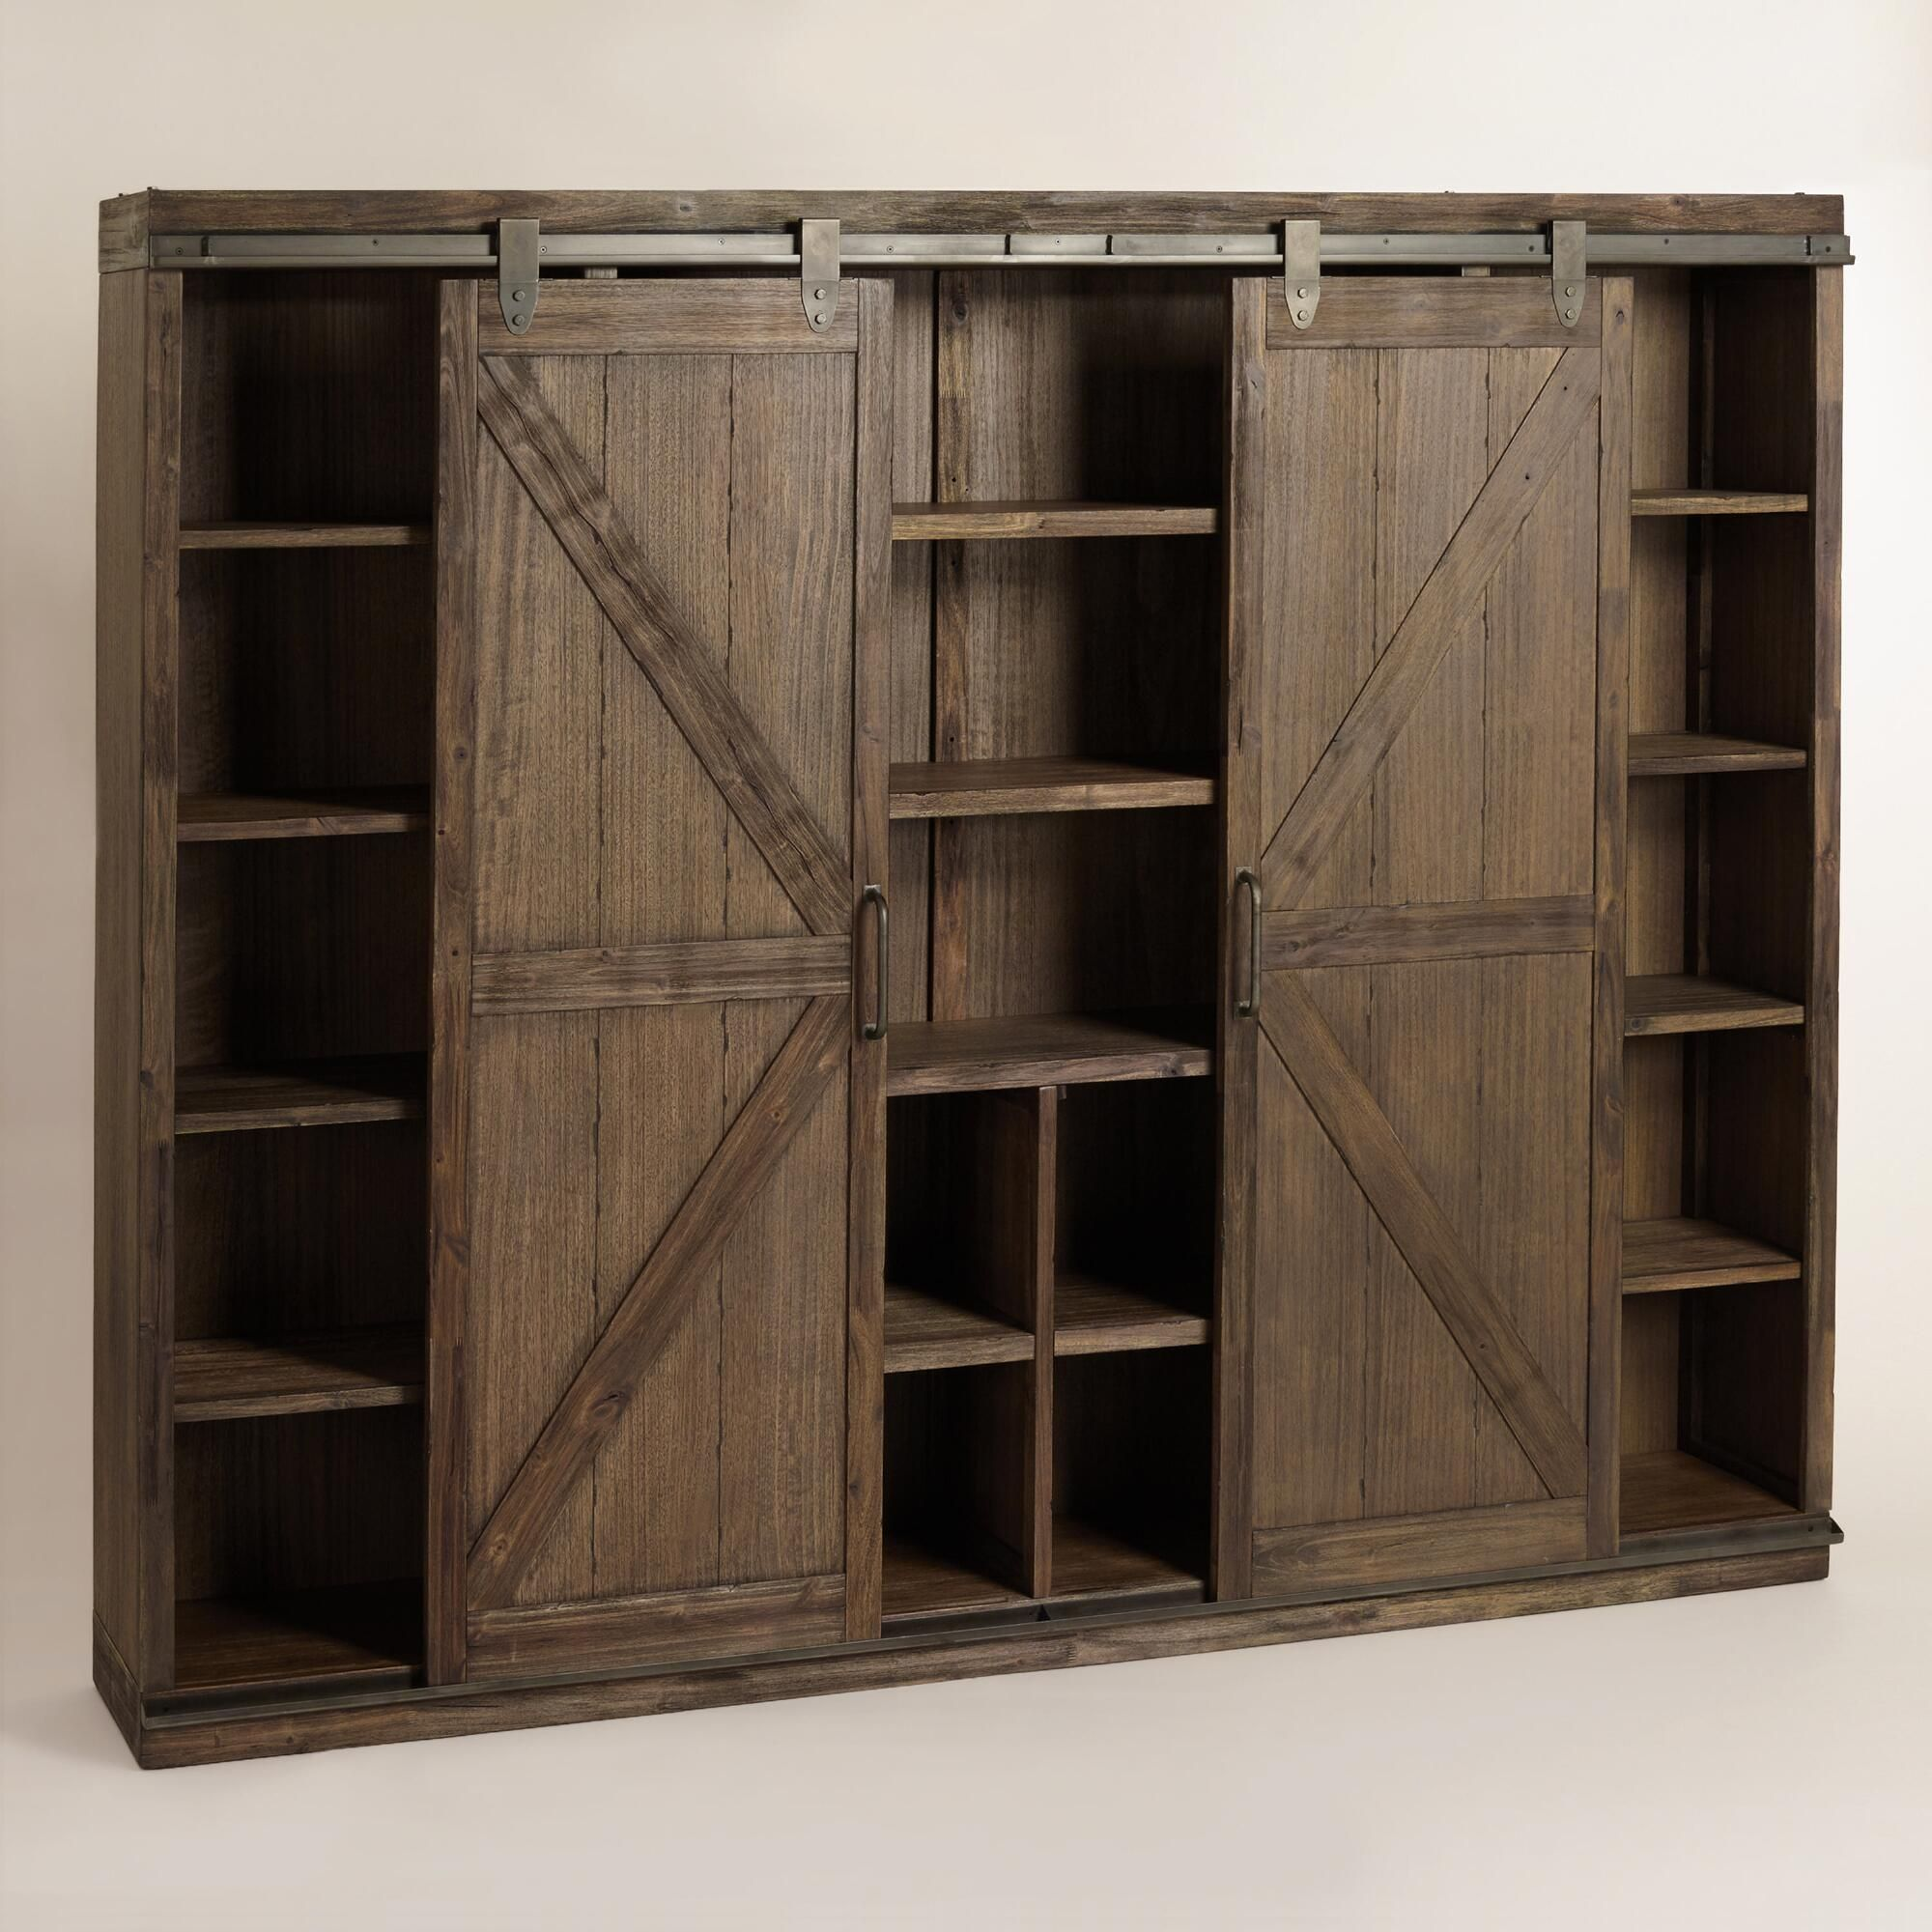 Wood Farmhouse Barn Door Bookcase Barn Door Bookcase Barn Door Cabinet Barn Doors Sliding